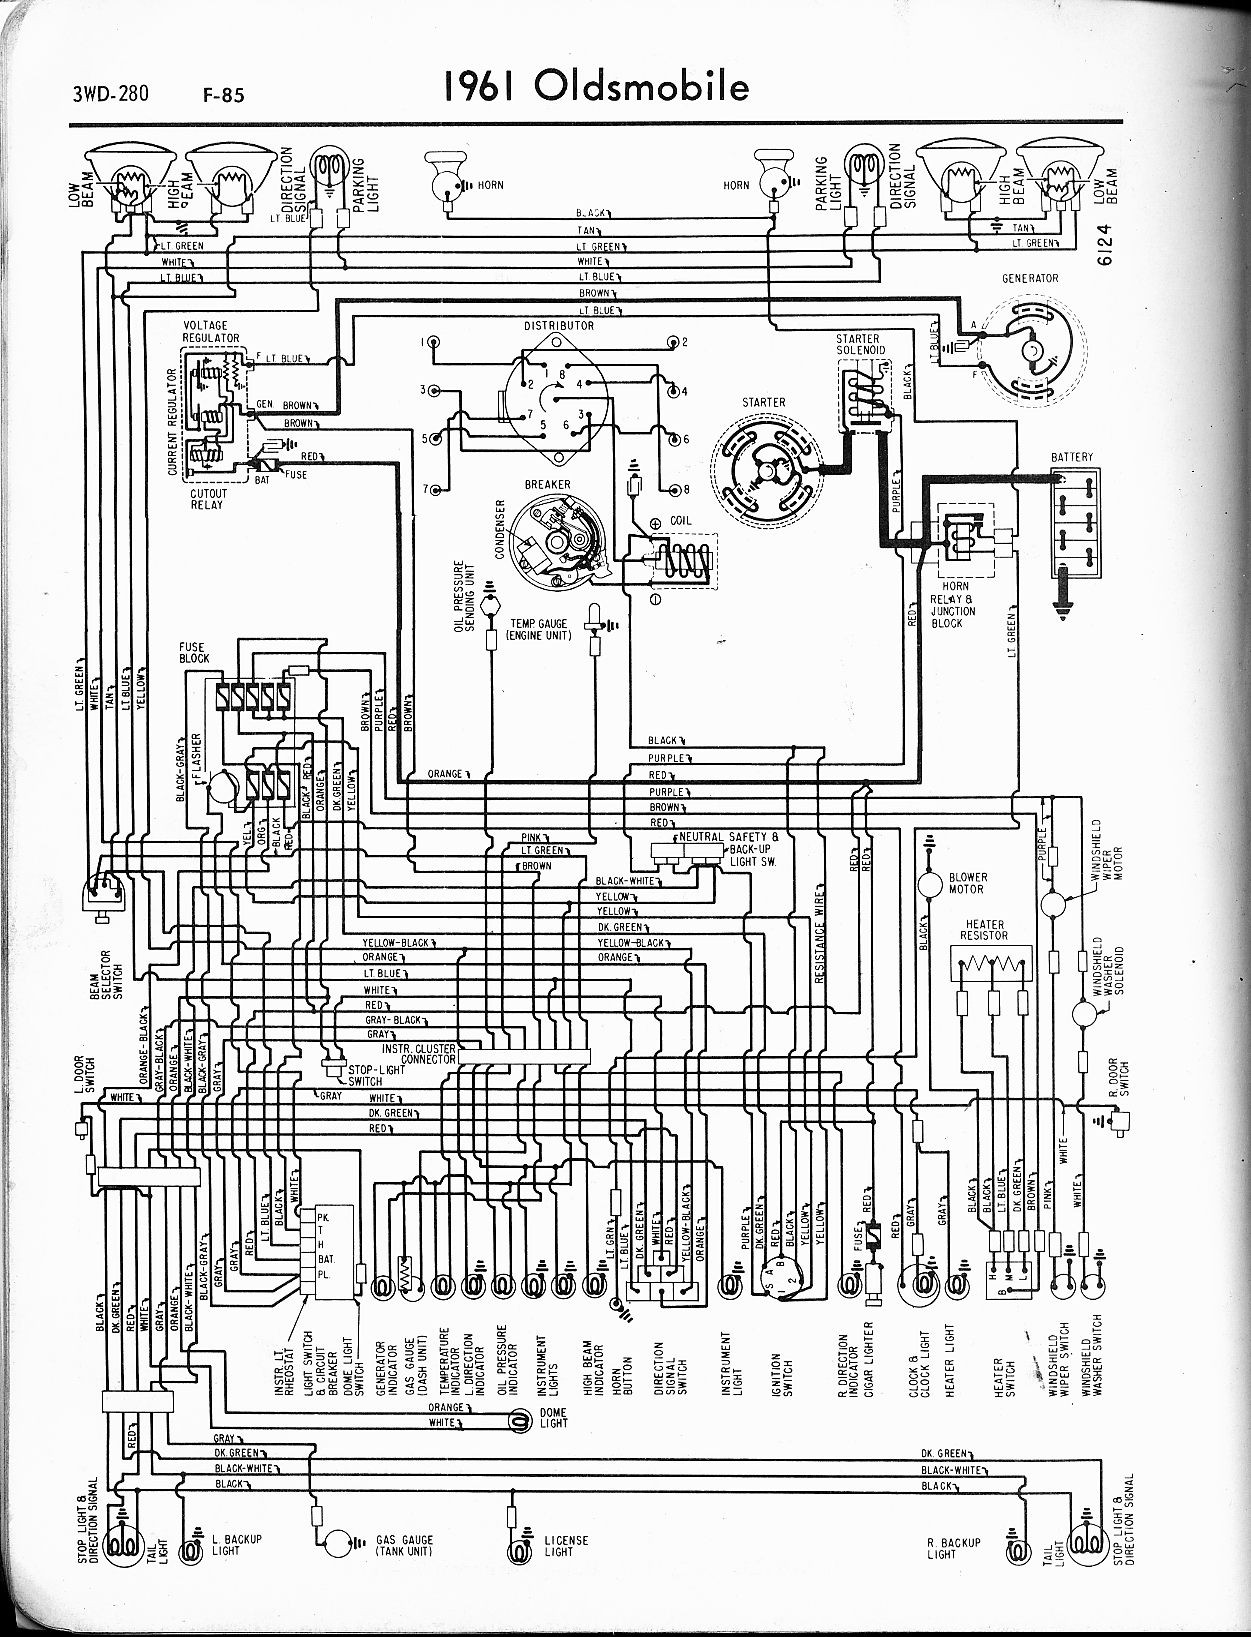 1997 Oldsmobile Silhouette Wiring Diagram Trusted Schematic Diagrams \u2022  Oldsmobile Charging System 1967 Oldsmobile Wiring Diagram